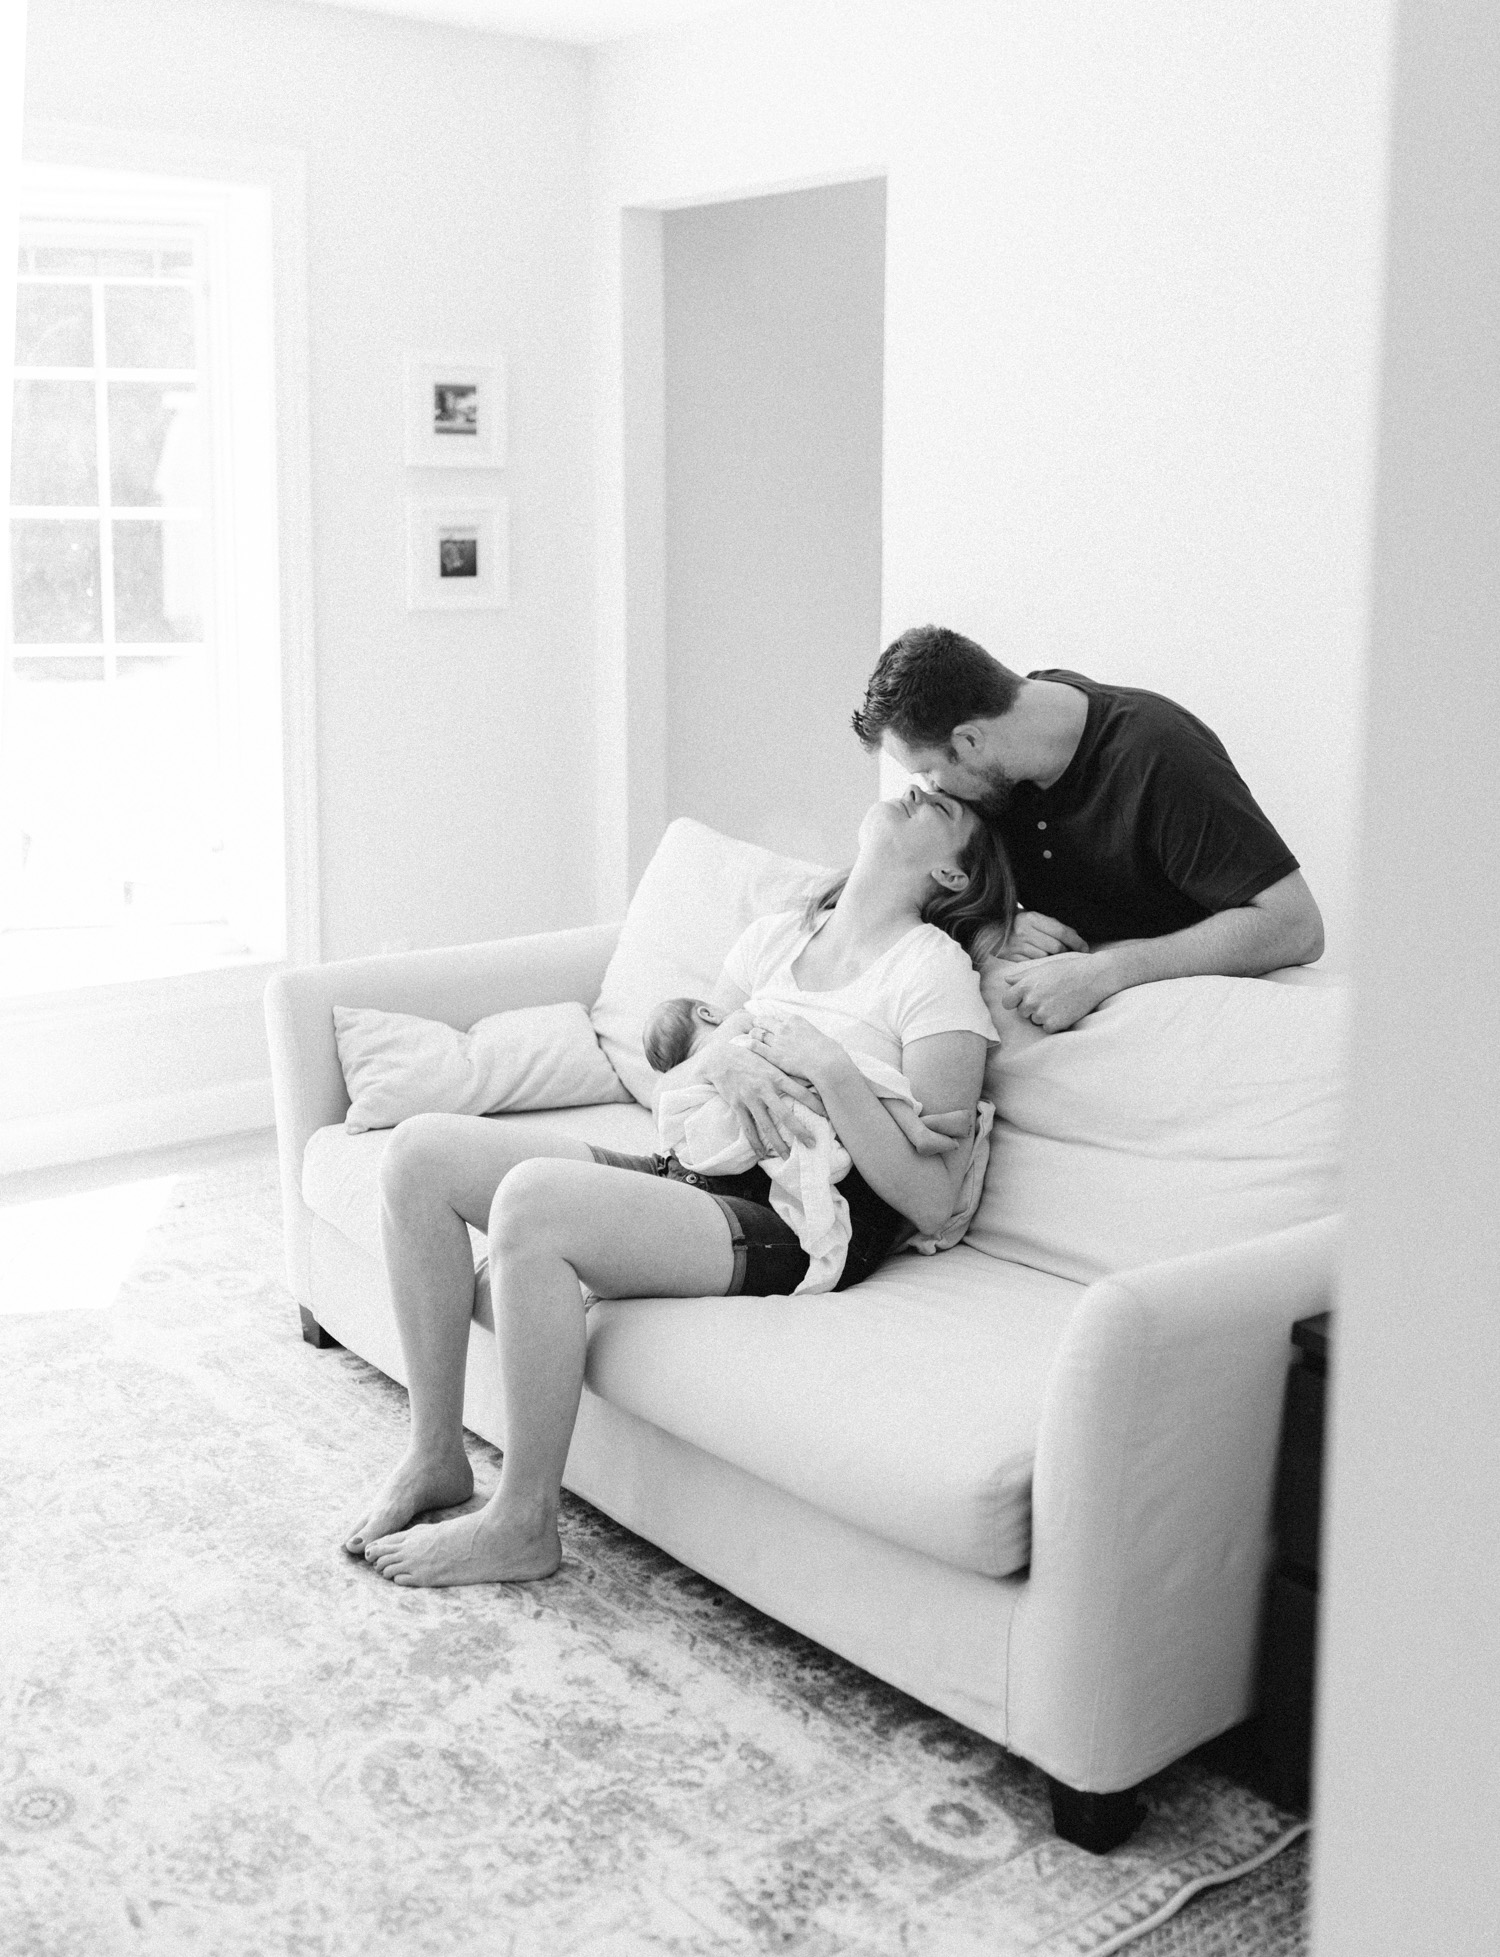 A woman is kissed by her husband while she feeds their newborn baby at home during natural family photos in Michigan